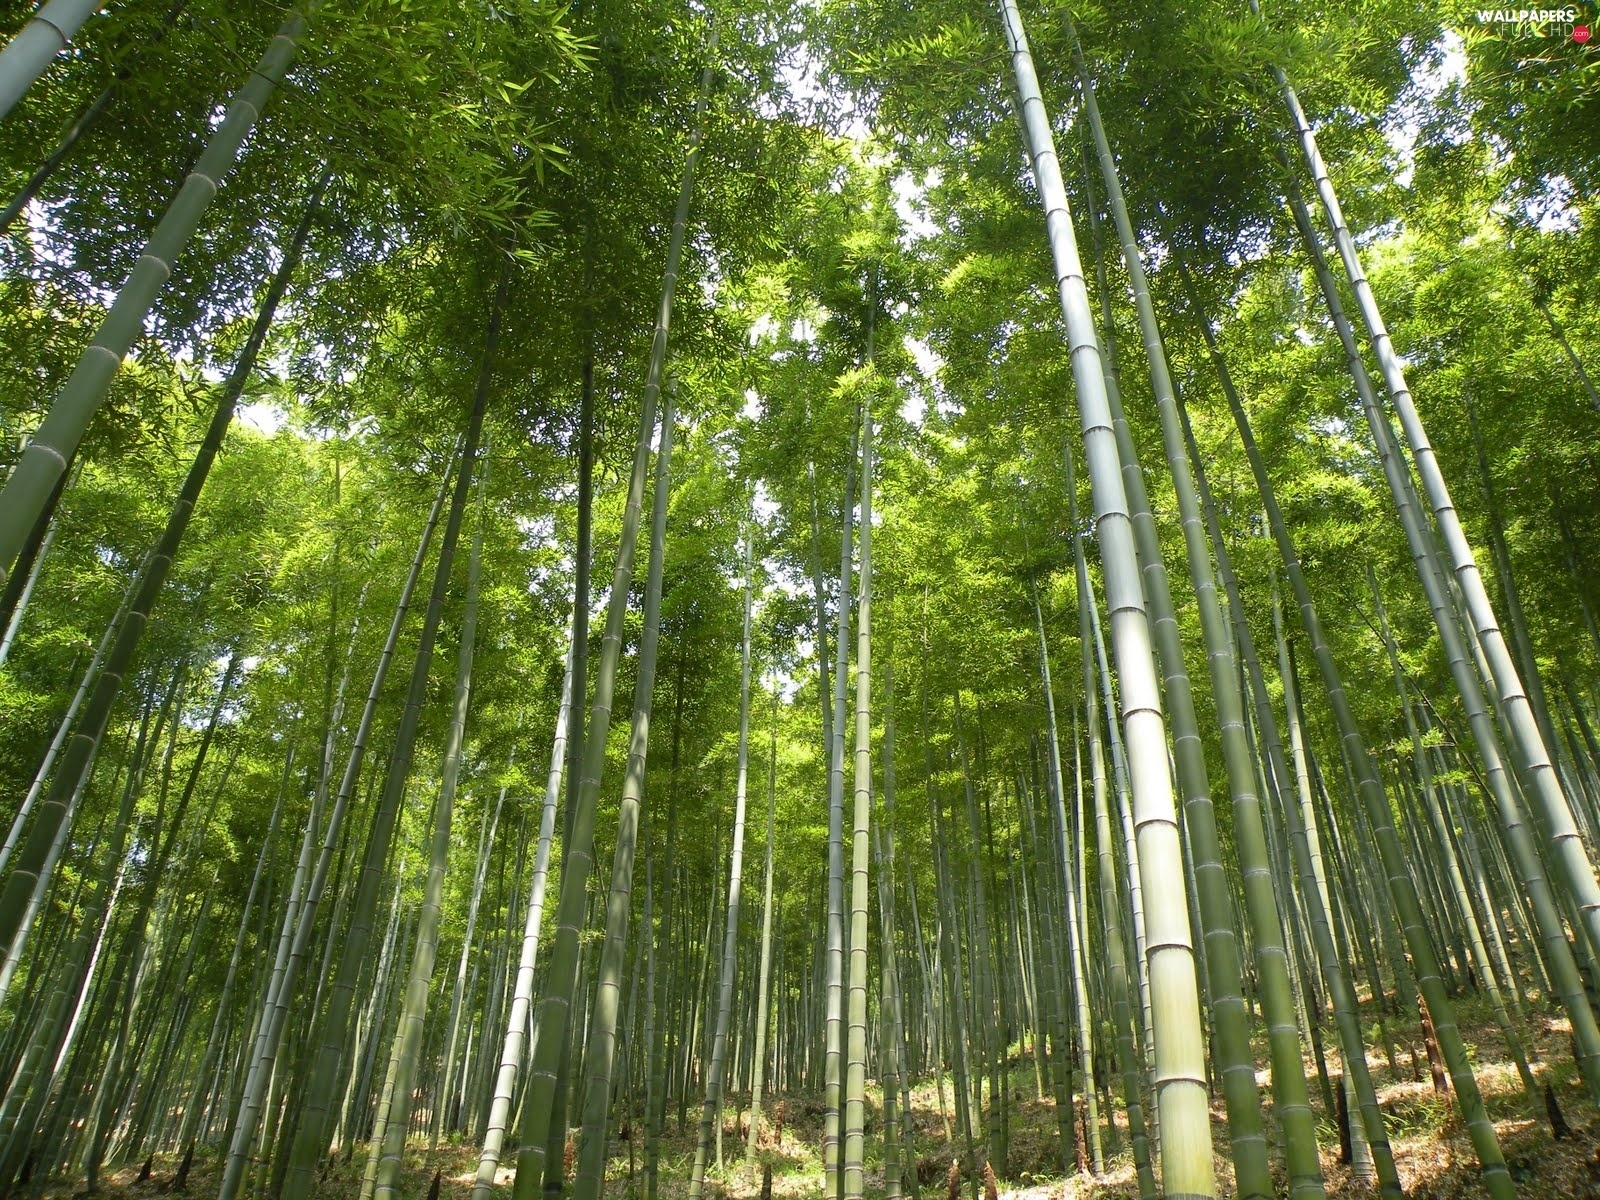 bamboo, forest